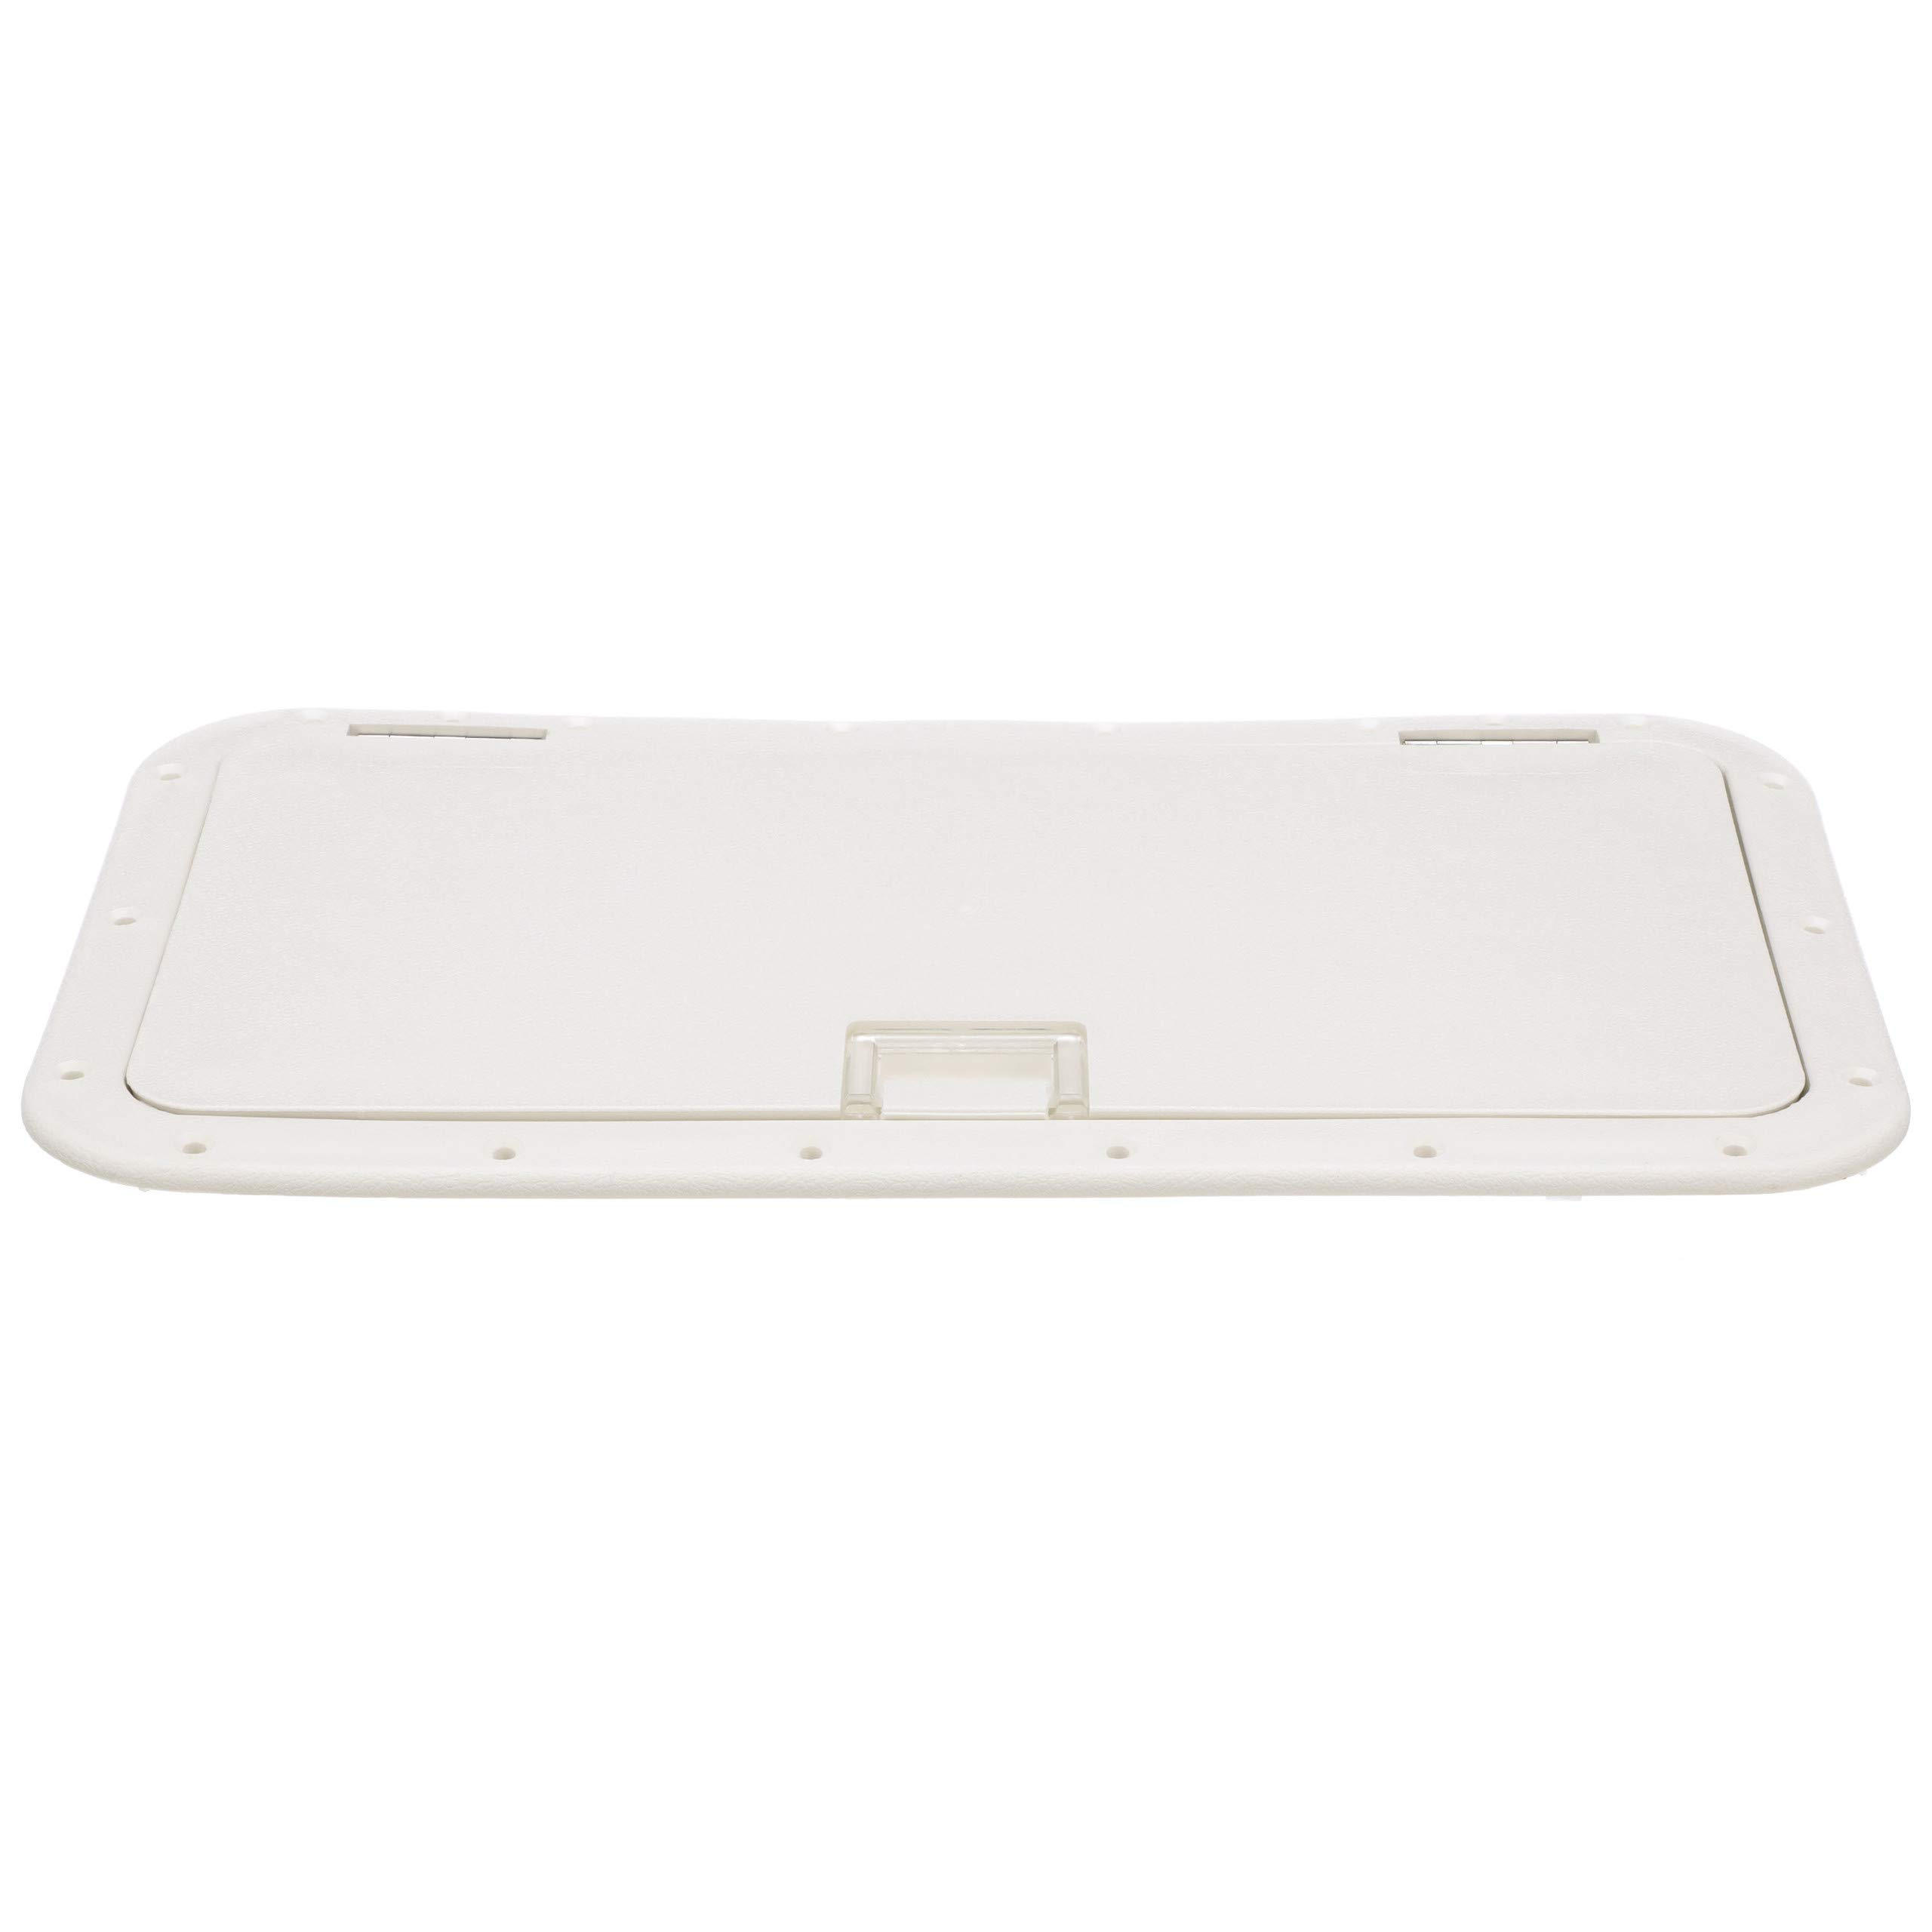 Seachoice 39151 Handle Hatch - White - 10 Inches x 20 Inches - Stainless-Steel Hinge by SEACHOICE